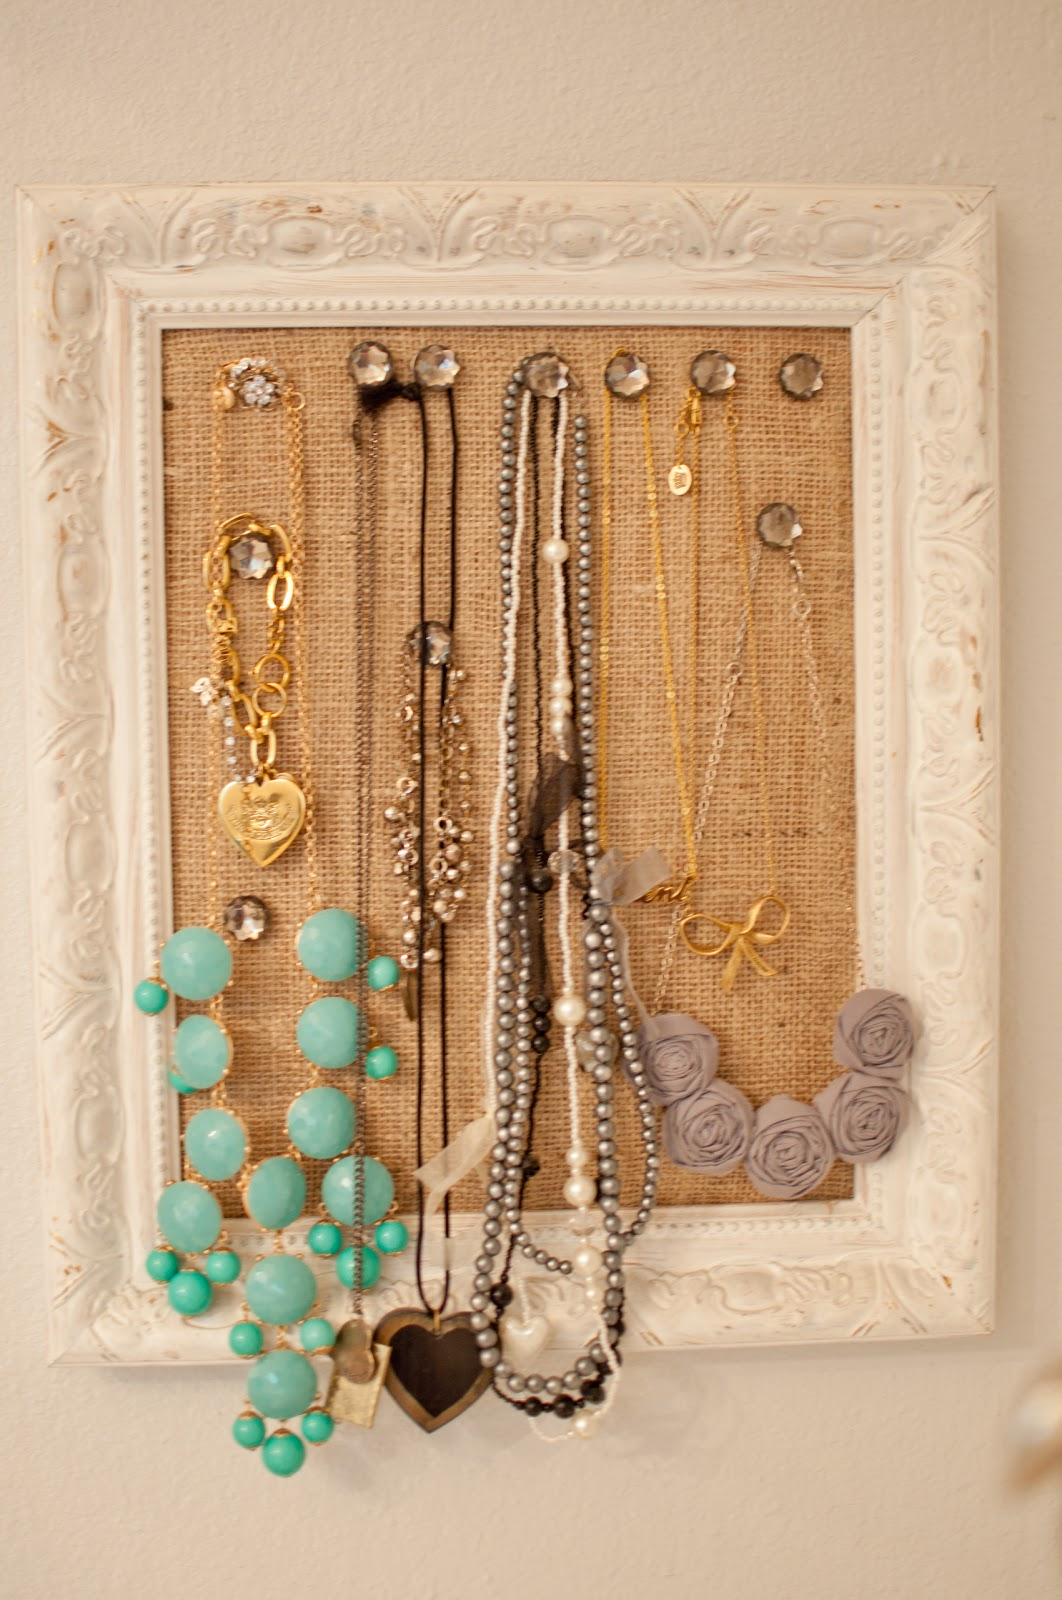 Fancy jewelry frame picture collection picture frame ideas domestic fashionista diy cork board jewelry frame solutioingenieria Choice Image